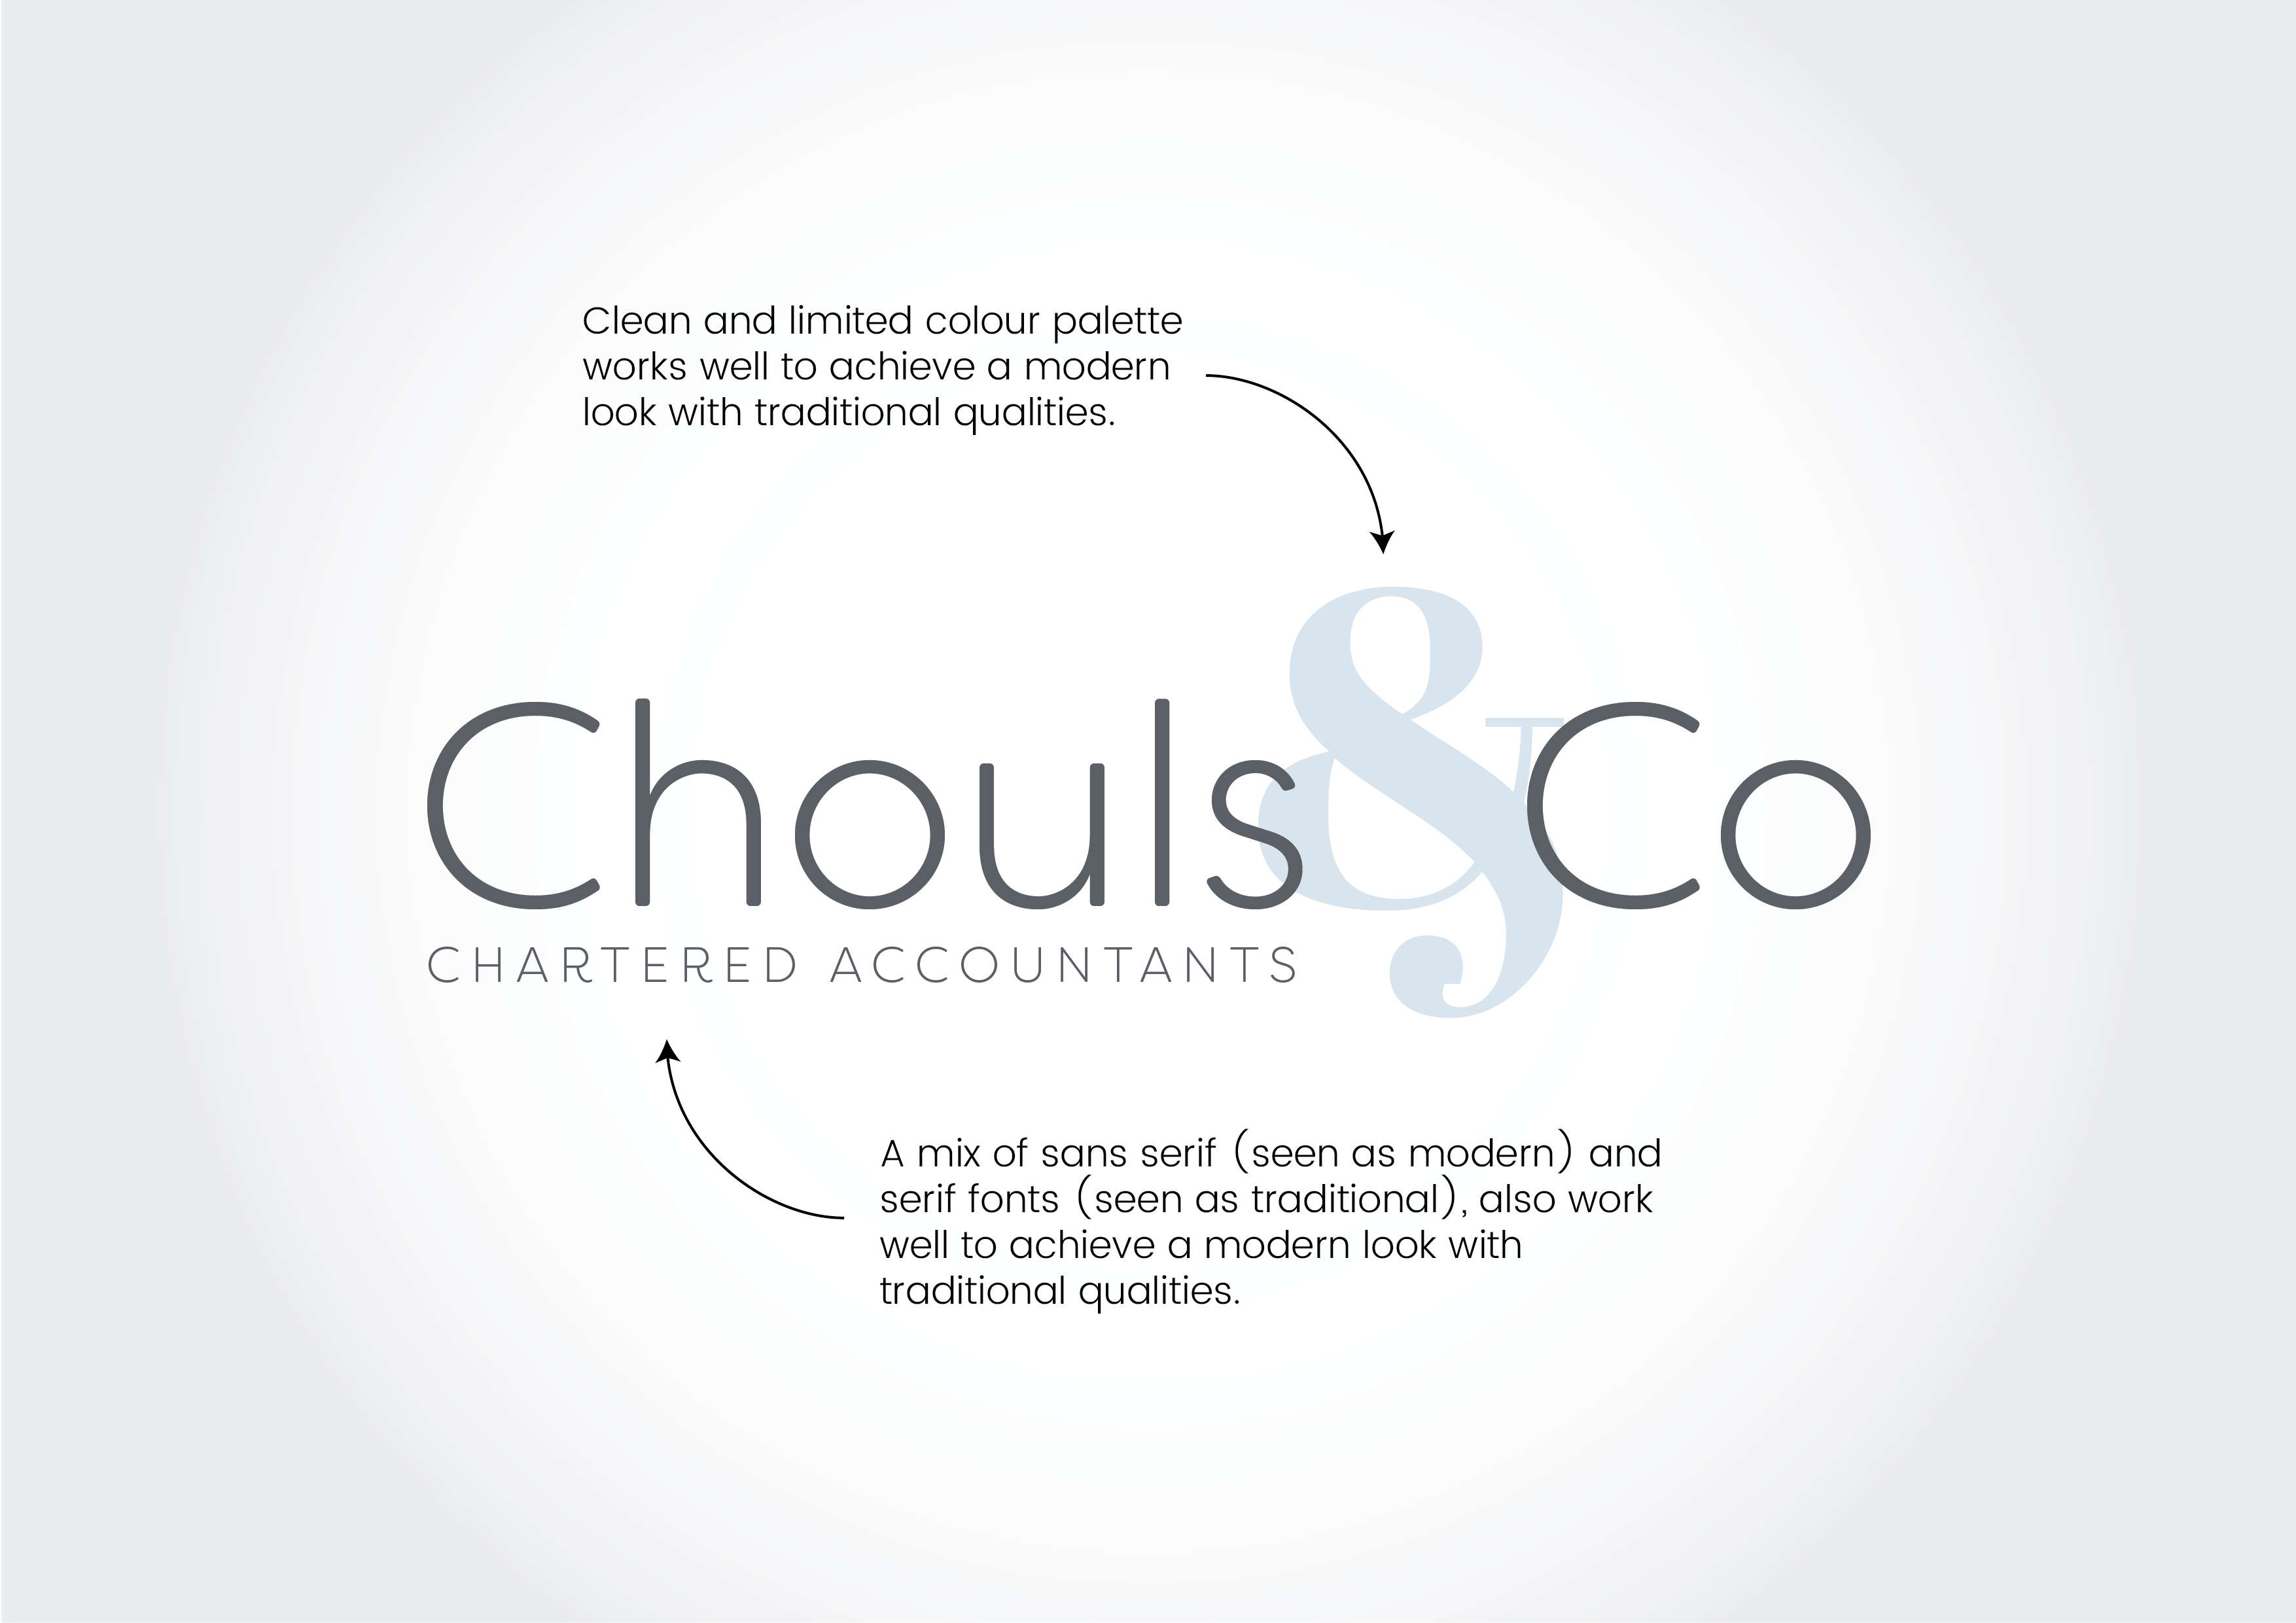 Chouls and co logo explanation